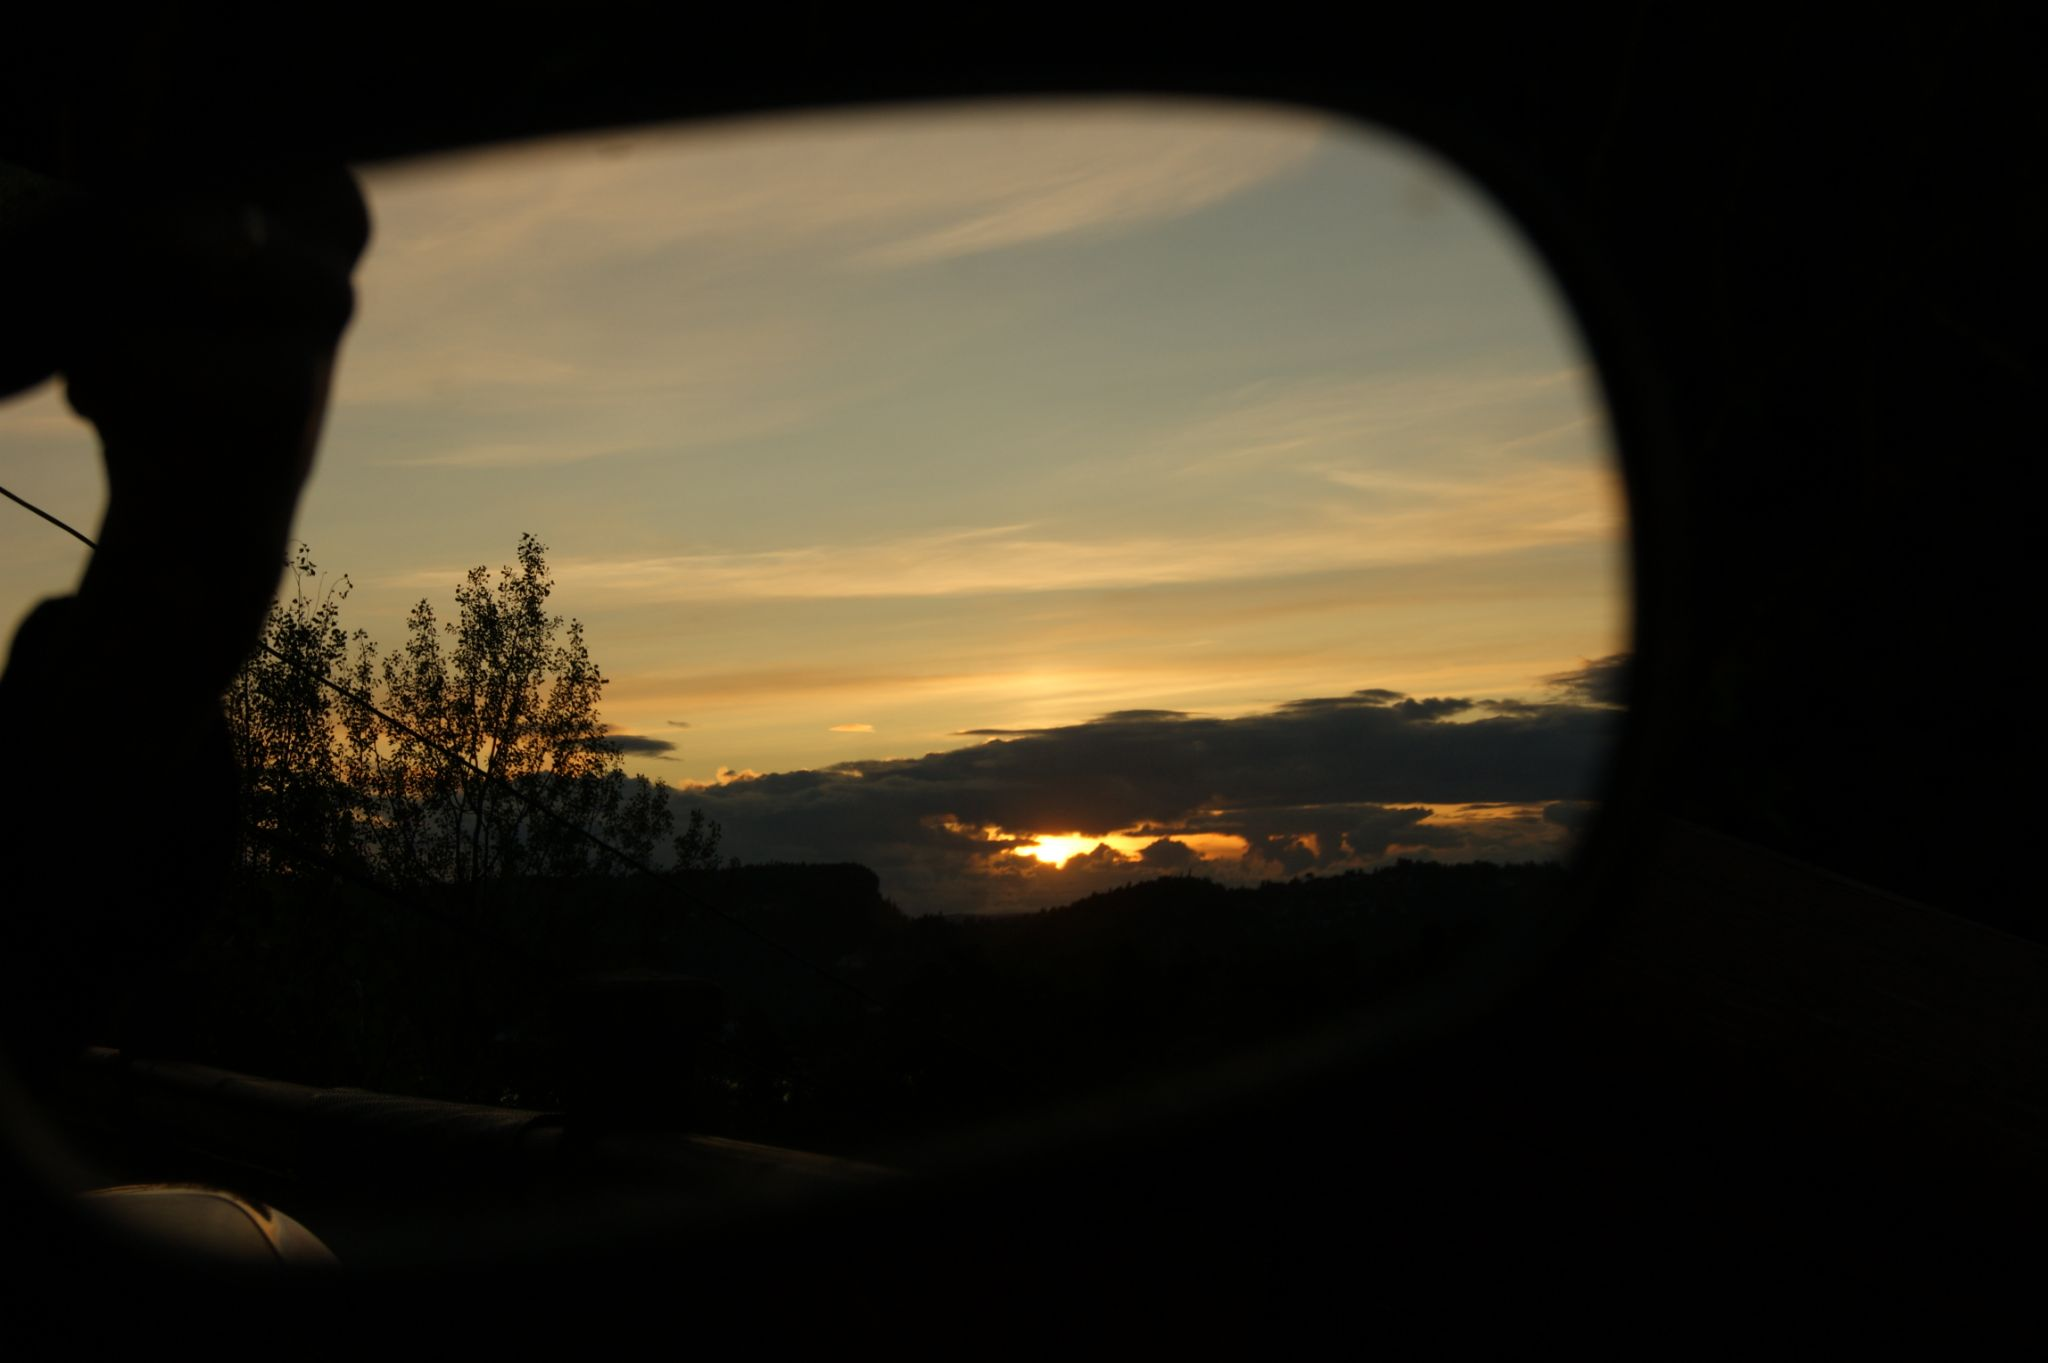 Sunset in the rearview mirror by kristin.vaa